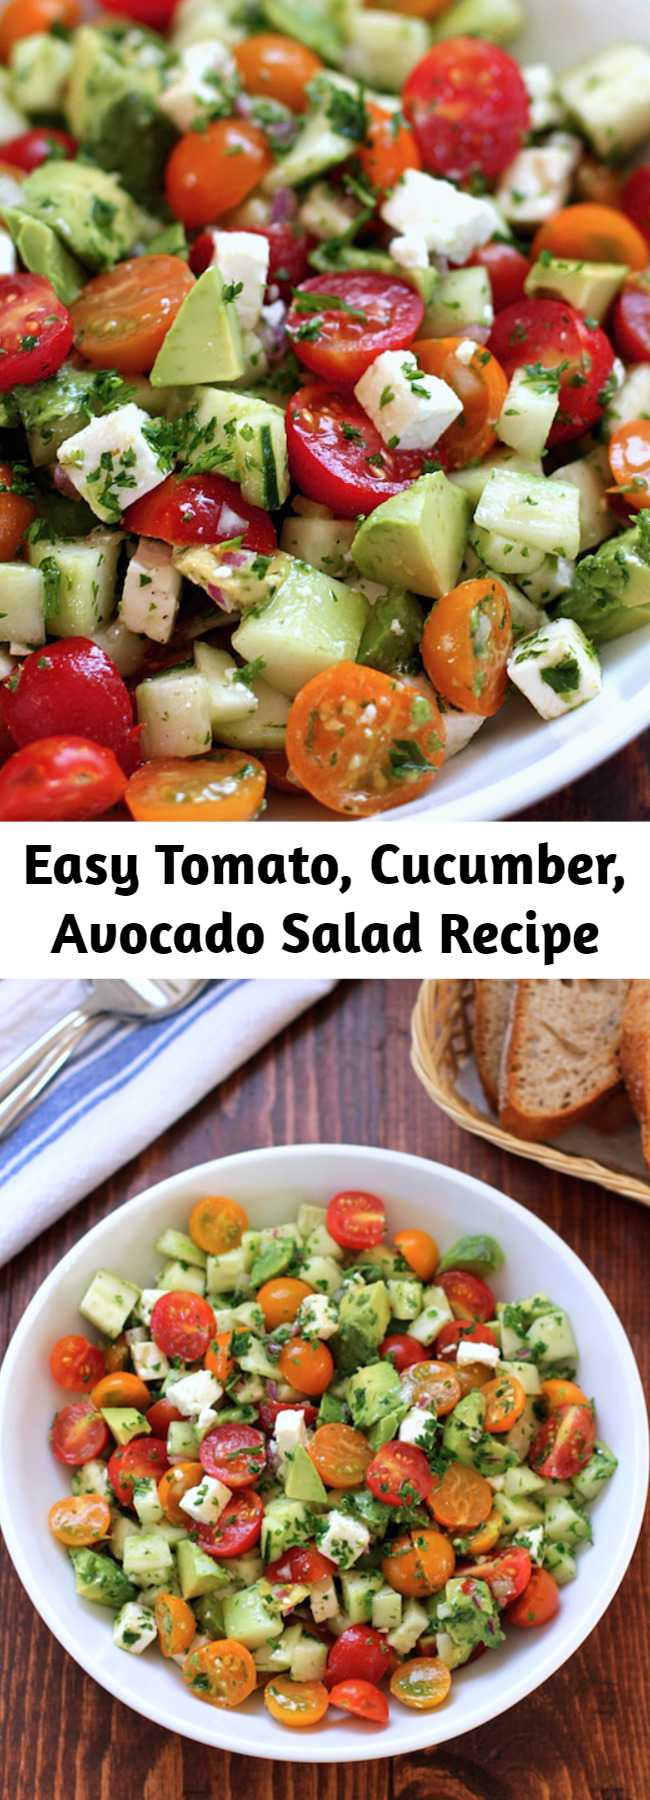 Easy Tomato, Cucumber, Avocado Salad Recipe - This tomato, cucumber, avocado salad is an easy, flavorful summer salad.  It's crunchy, fresh and simple to make.  It's a family favorite and ready in less than 15 minutes.